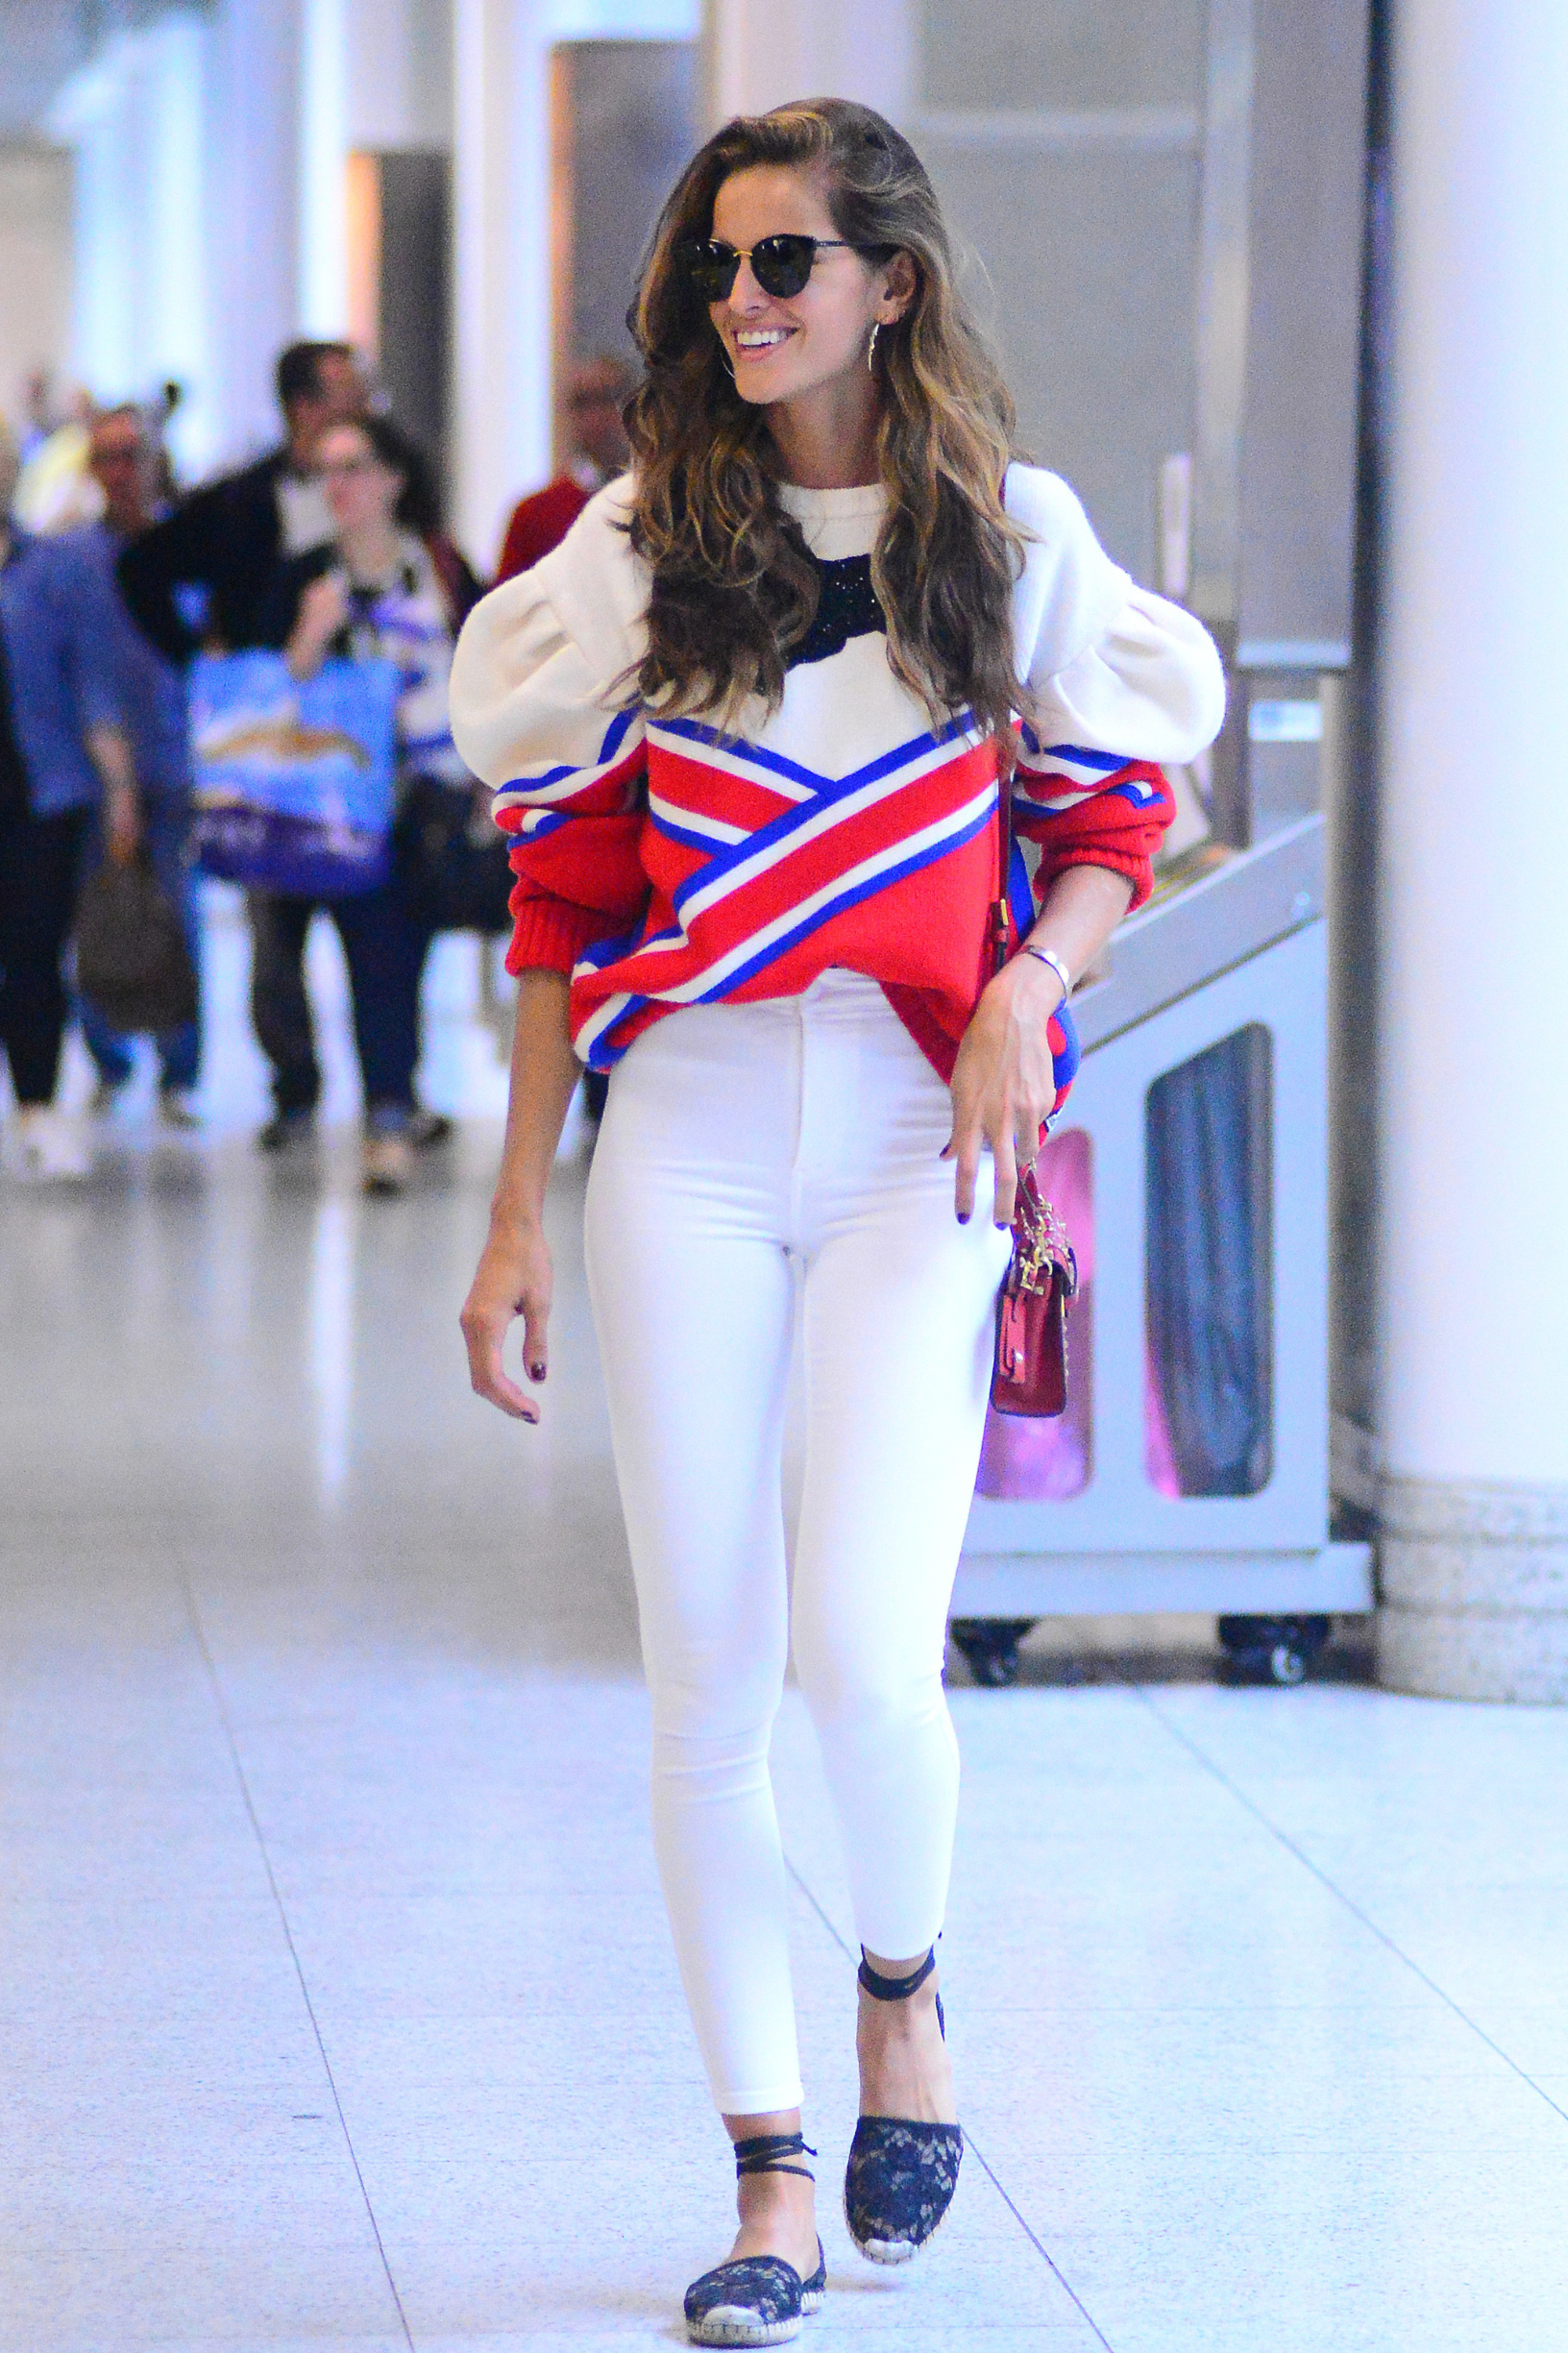 *EXCLUSIVE* Rio de Janeiro, Brazil - After a very exciting week in Rio promoting the Olympic Games and showing off her famous curves in different bikinis, Izabel Goulart says bye to Rio as she arrives at the airport ahead of a departing flight.      August 8, 2016, Image: 296499516, License: Rights-managed, Restrictions: , Model Release: no, Credit line: GADE / Backgrid USA / Profimedia